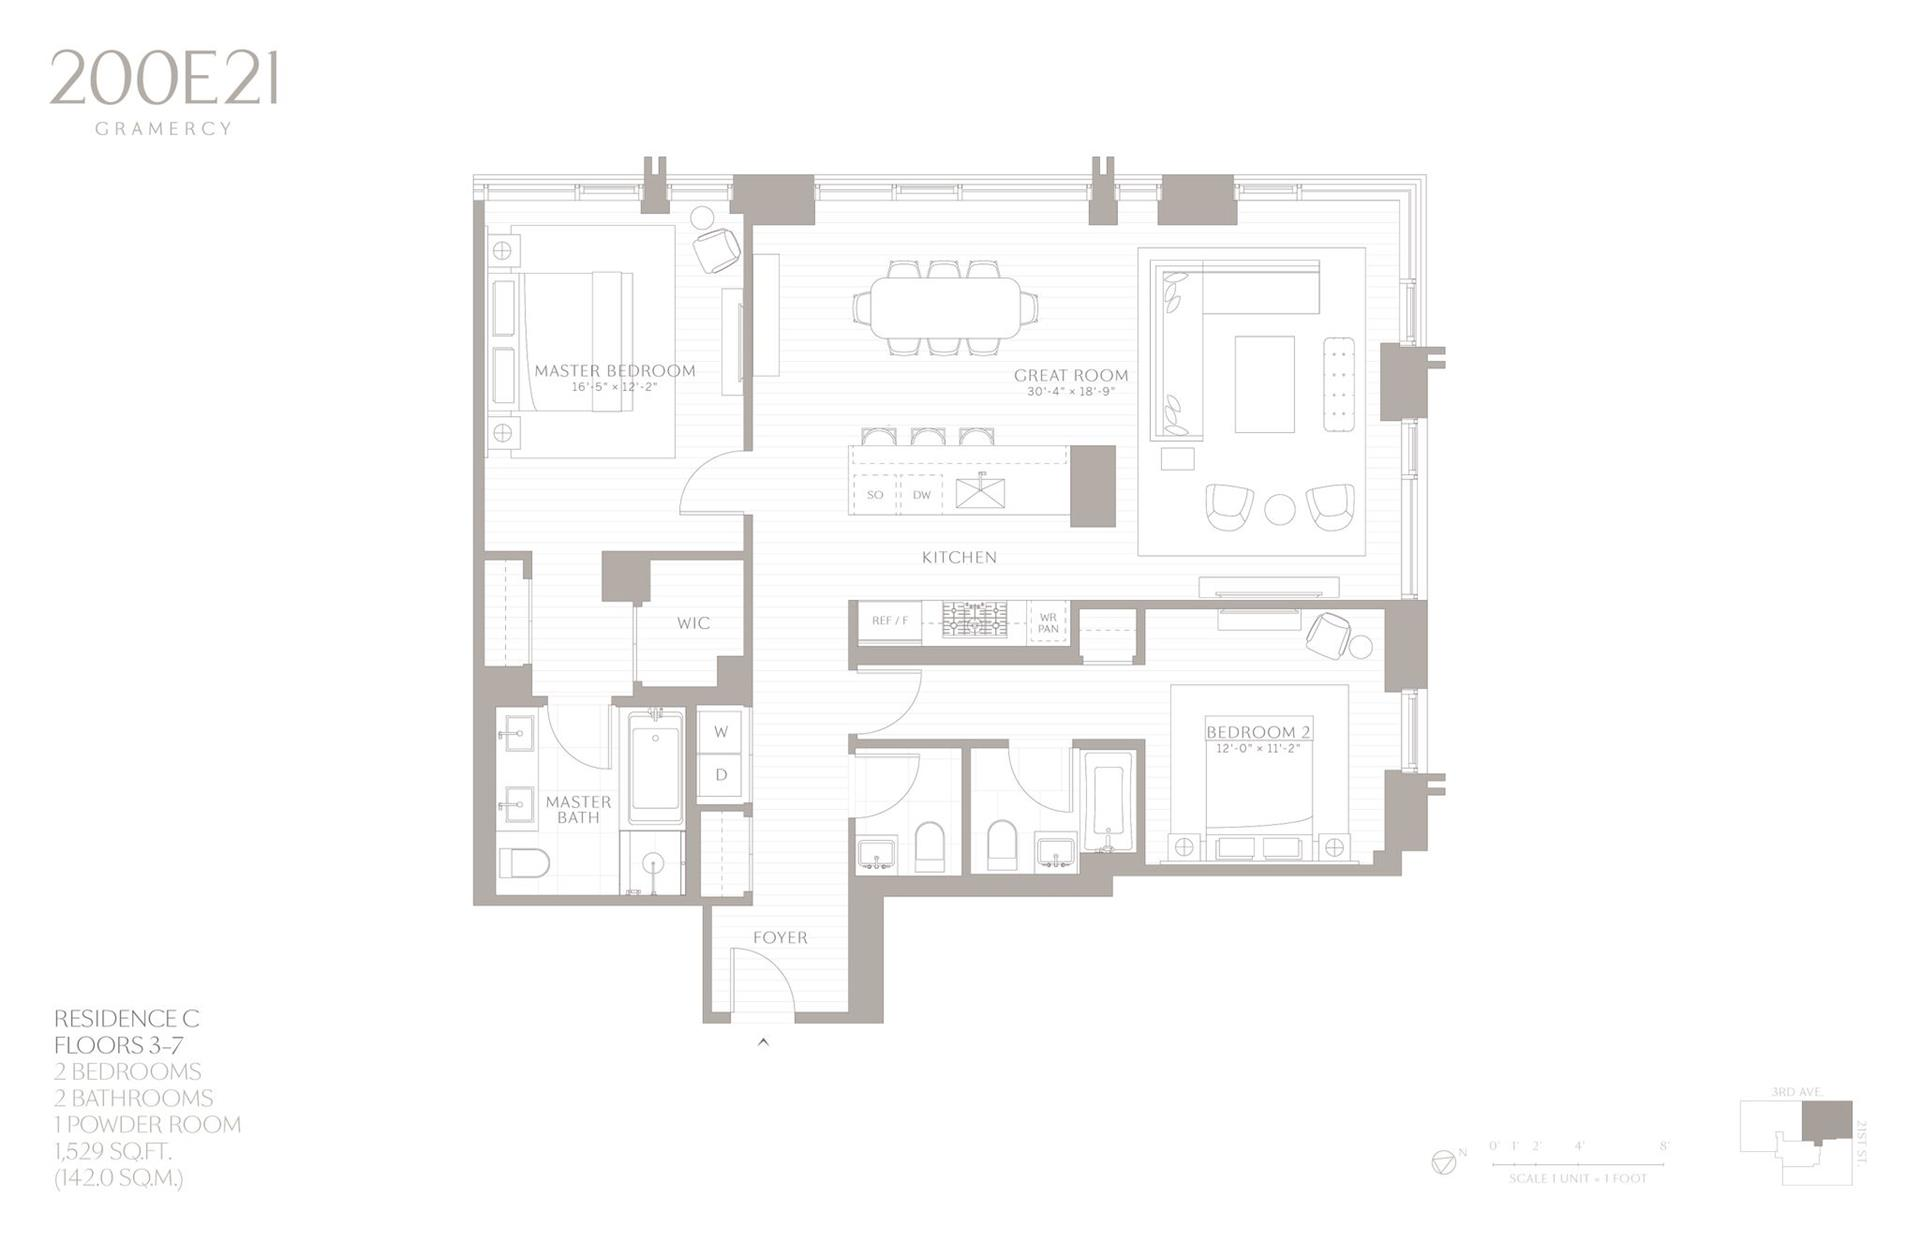 Floor plan of 200 East 21st St, 5C - Gramercy - Union Square, New York